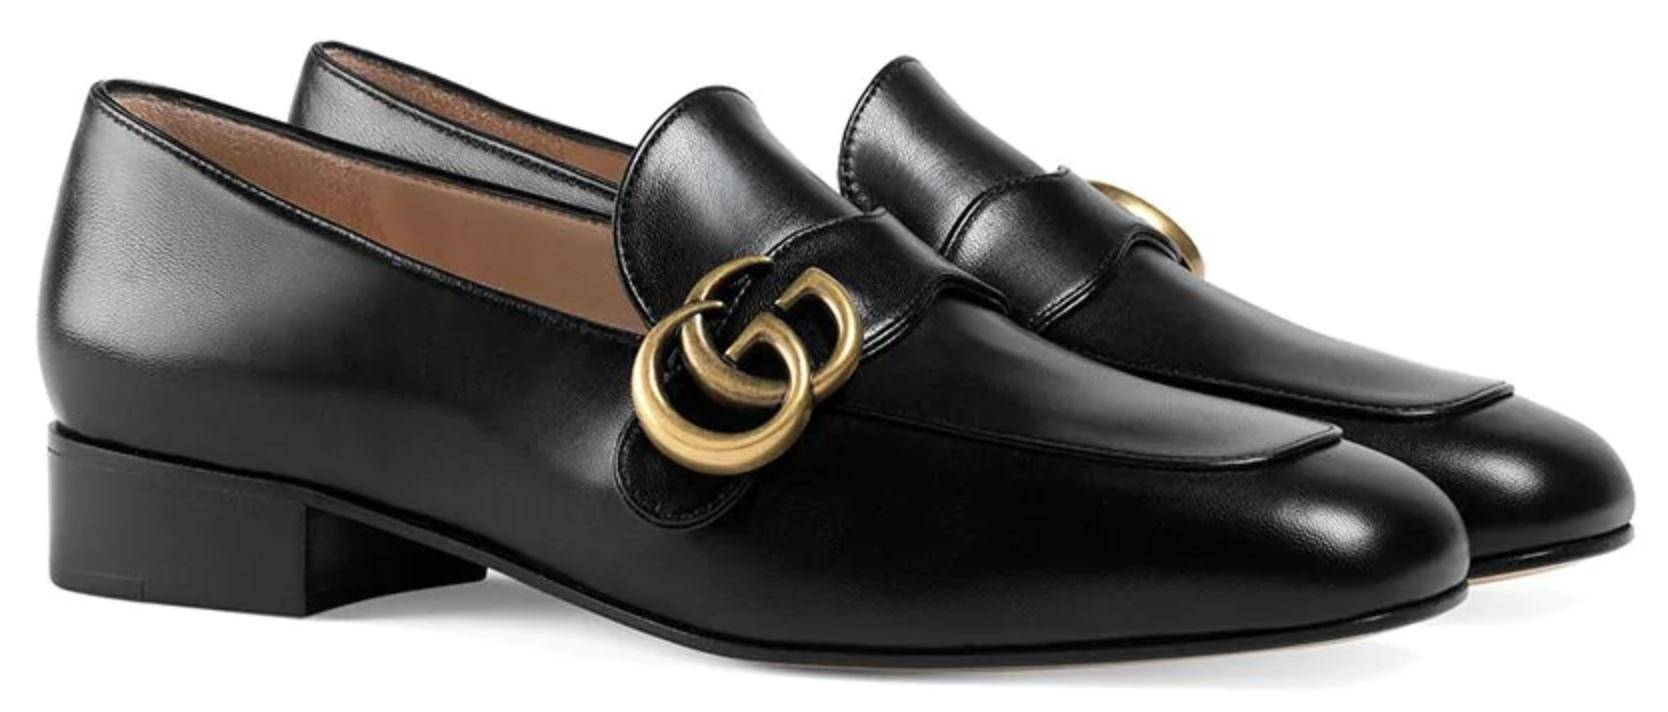 Paris Chic Style French Shoes Style Outfit Parisian Flats Loafers Gucci Double G